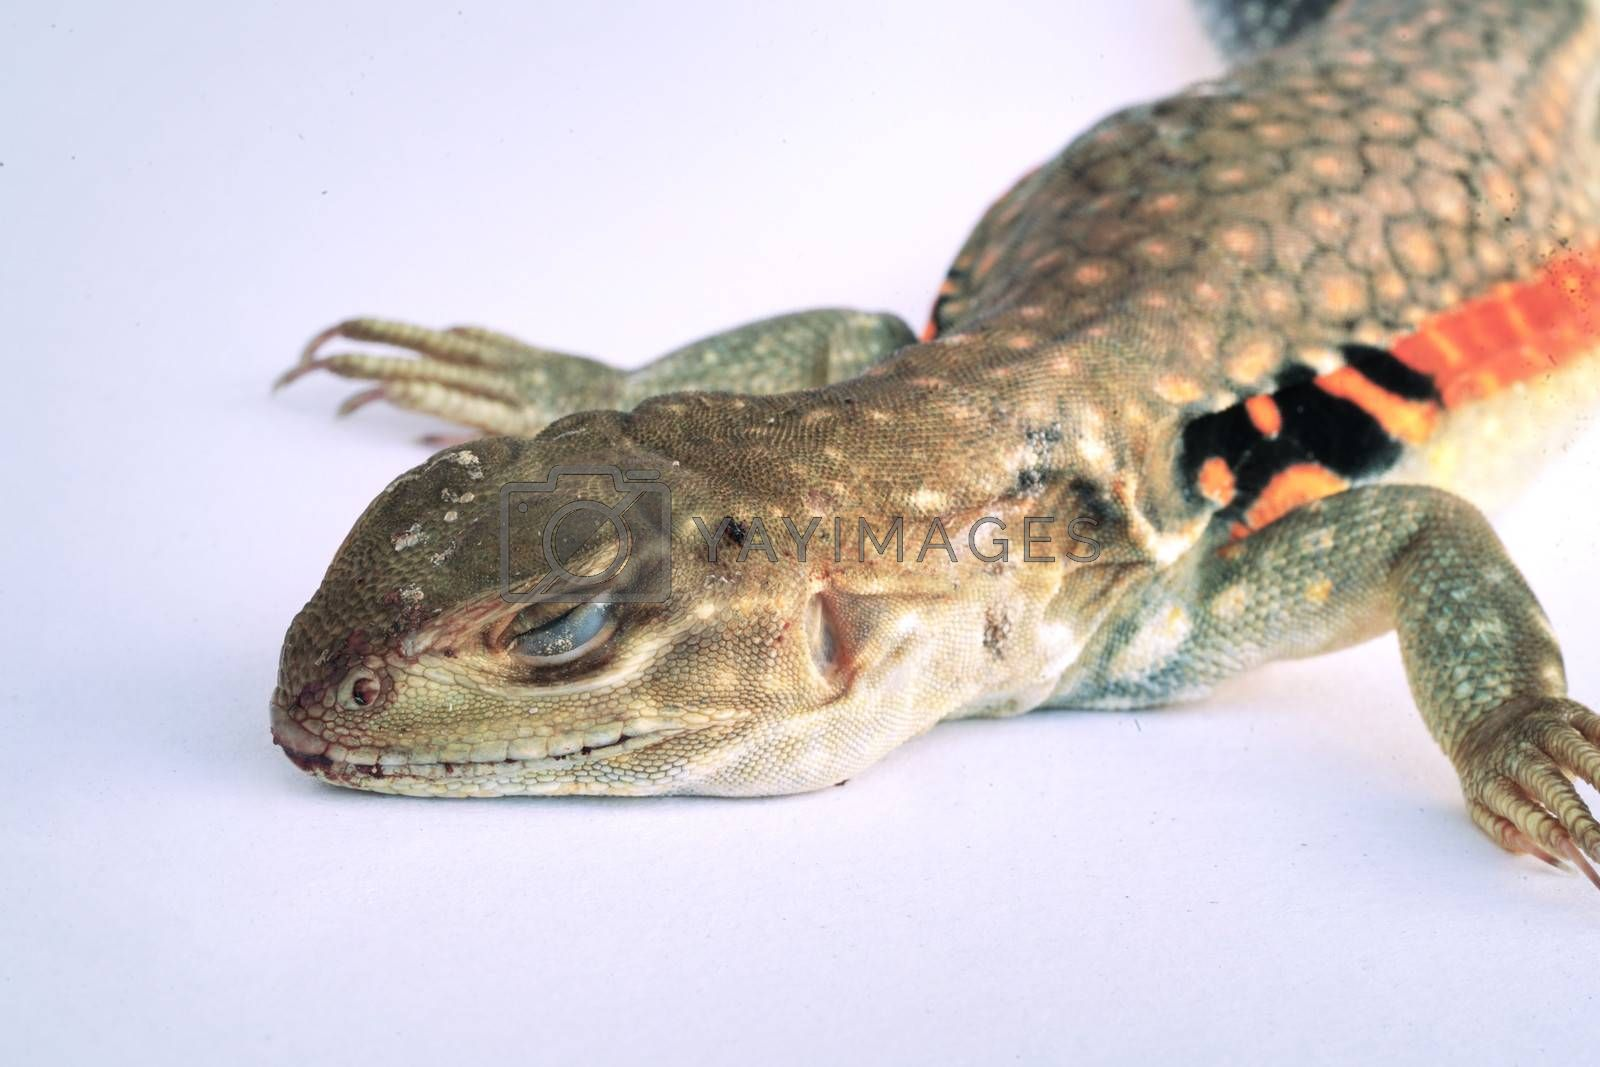 A close-up of a species of reptile with a reddish brown body in Thailand and in tropical countries. Isolated white background